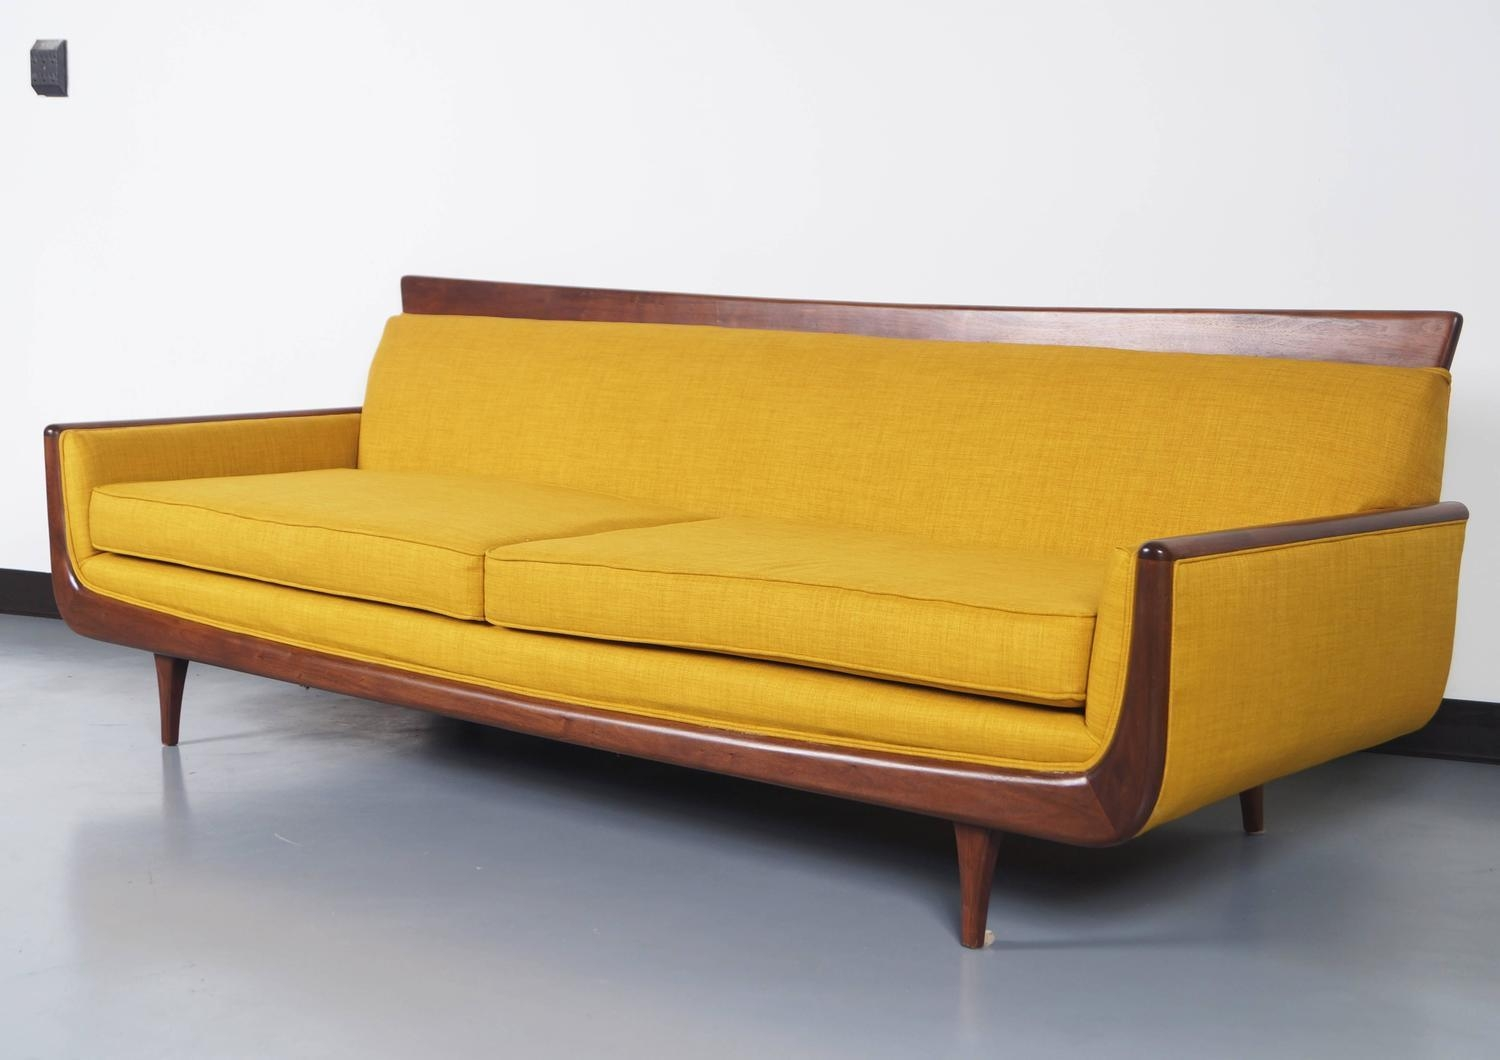 Mid Century Sofa Modern Gondola 2 New Sectional Sofas Made In The Intended For Danish Modern Sofas (Image 12 of 20)